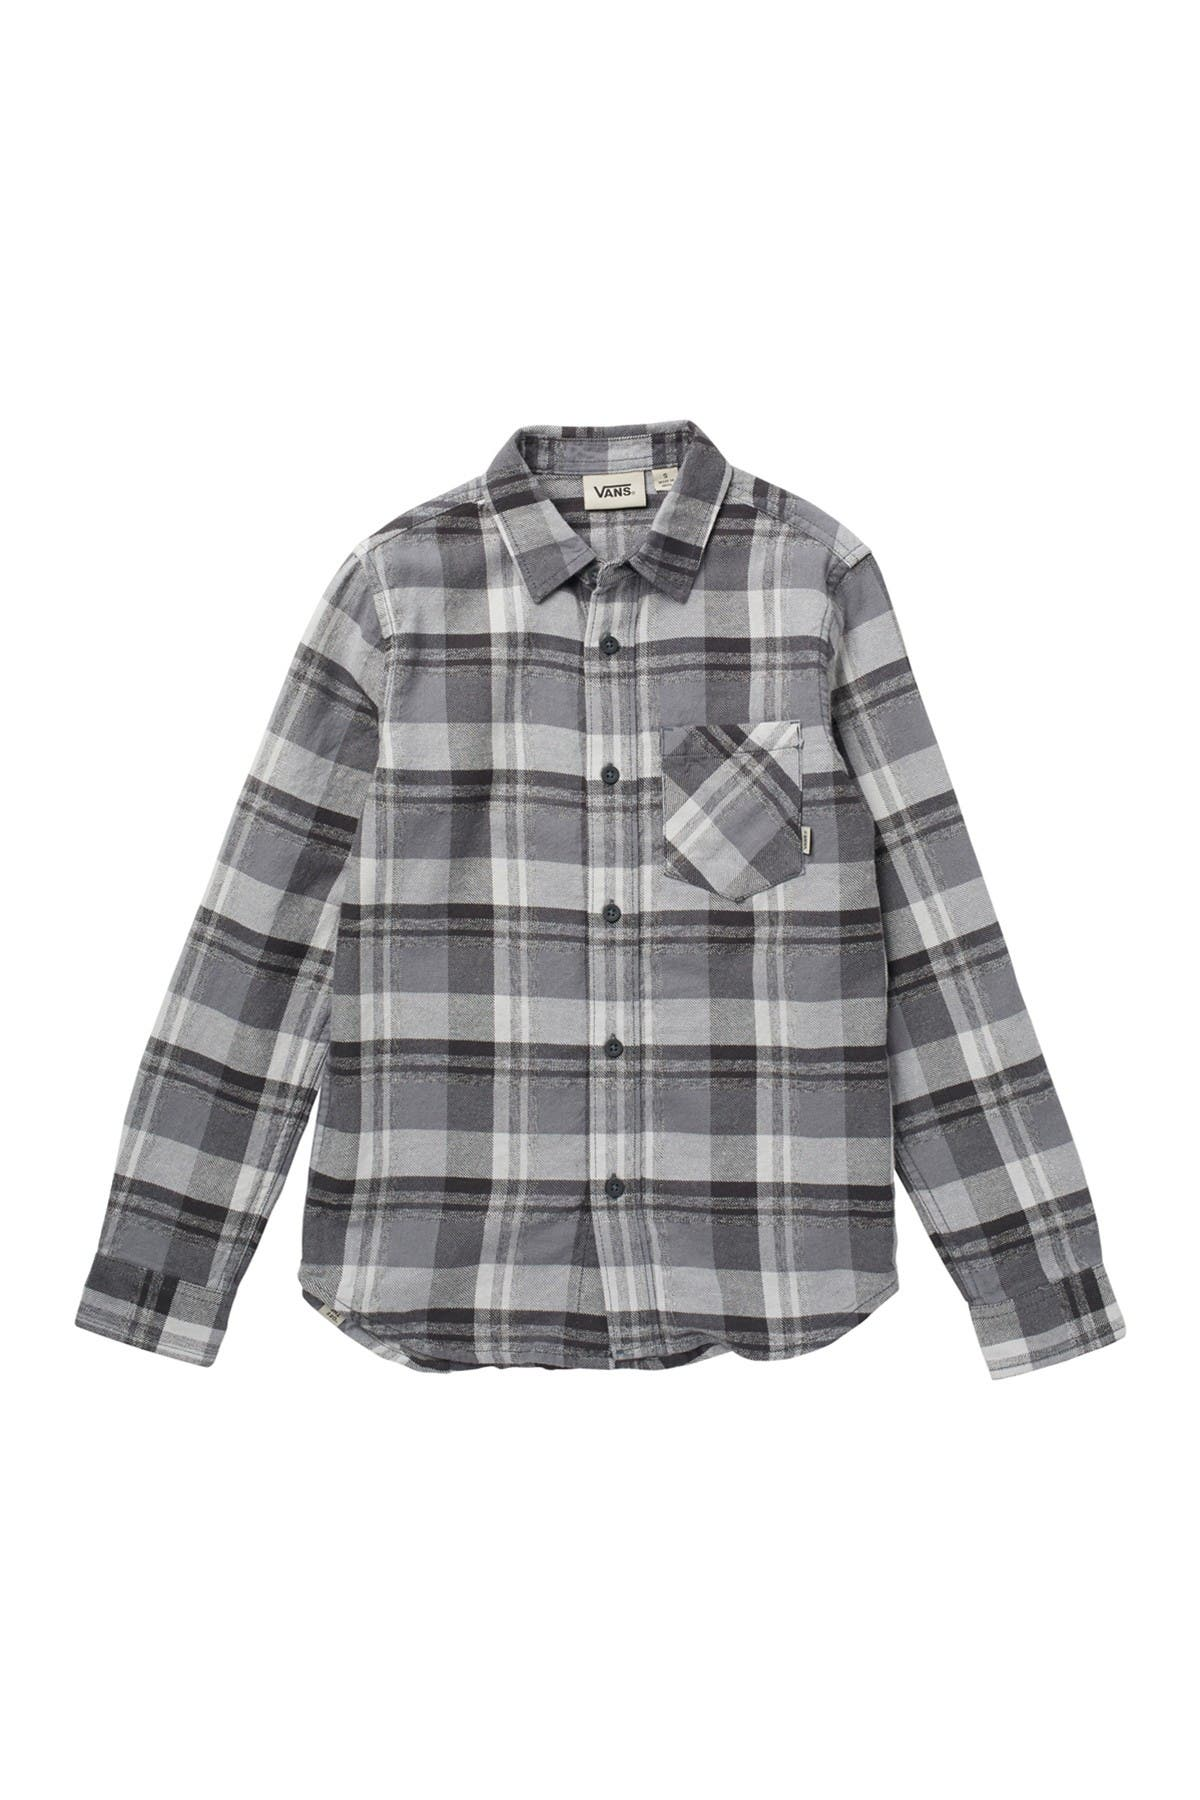 Image of VANS By Brisk Taker Plaid Print Shirt